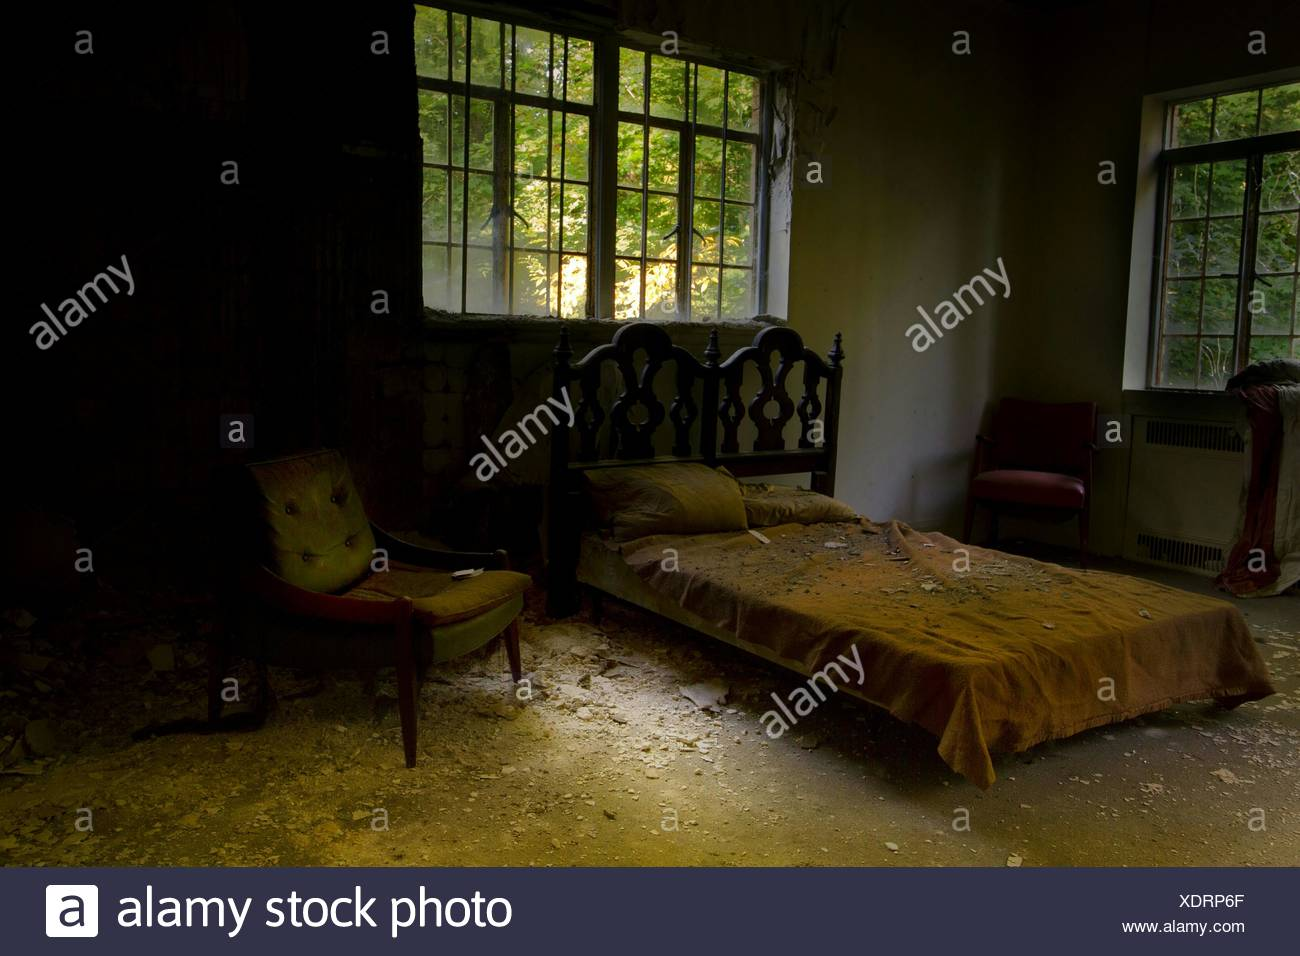 Messy Bed And Chair In Abandoned Room Of Old House - Stock Image